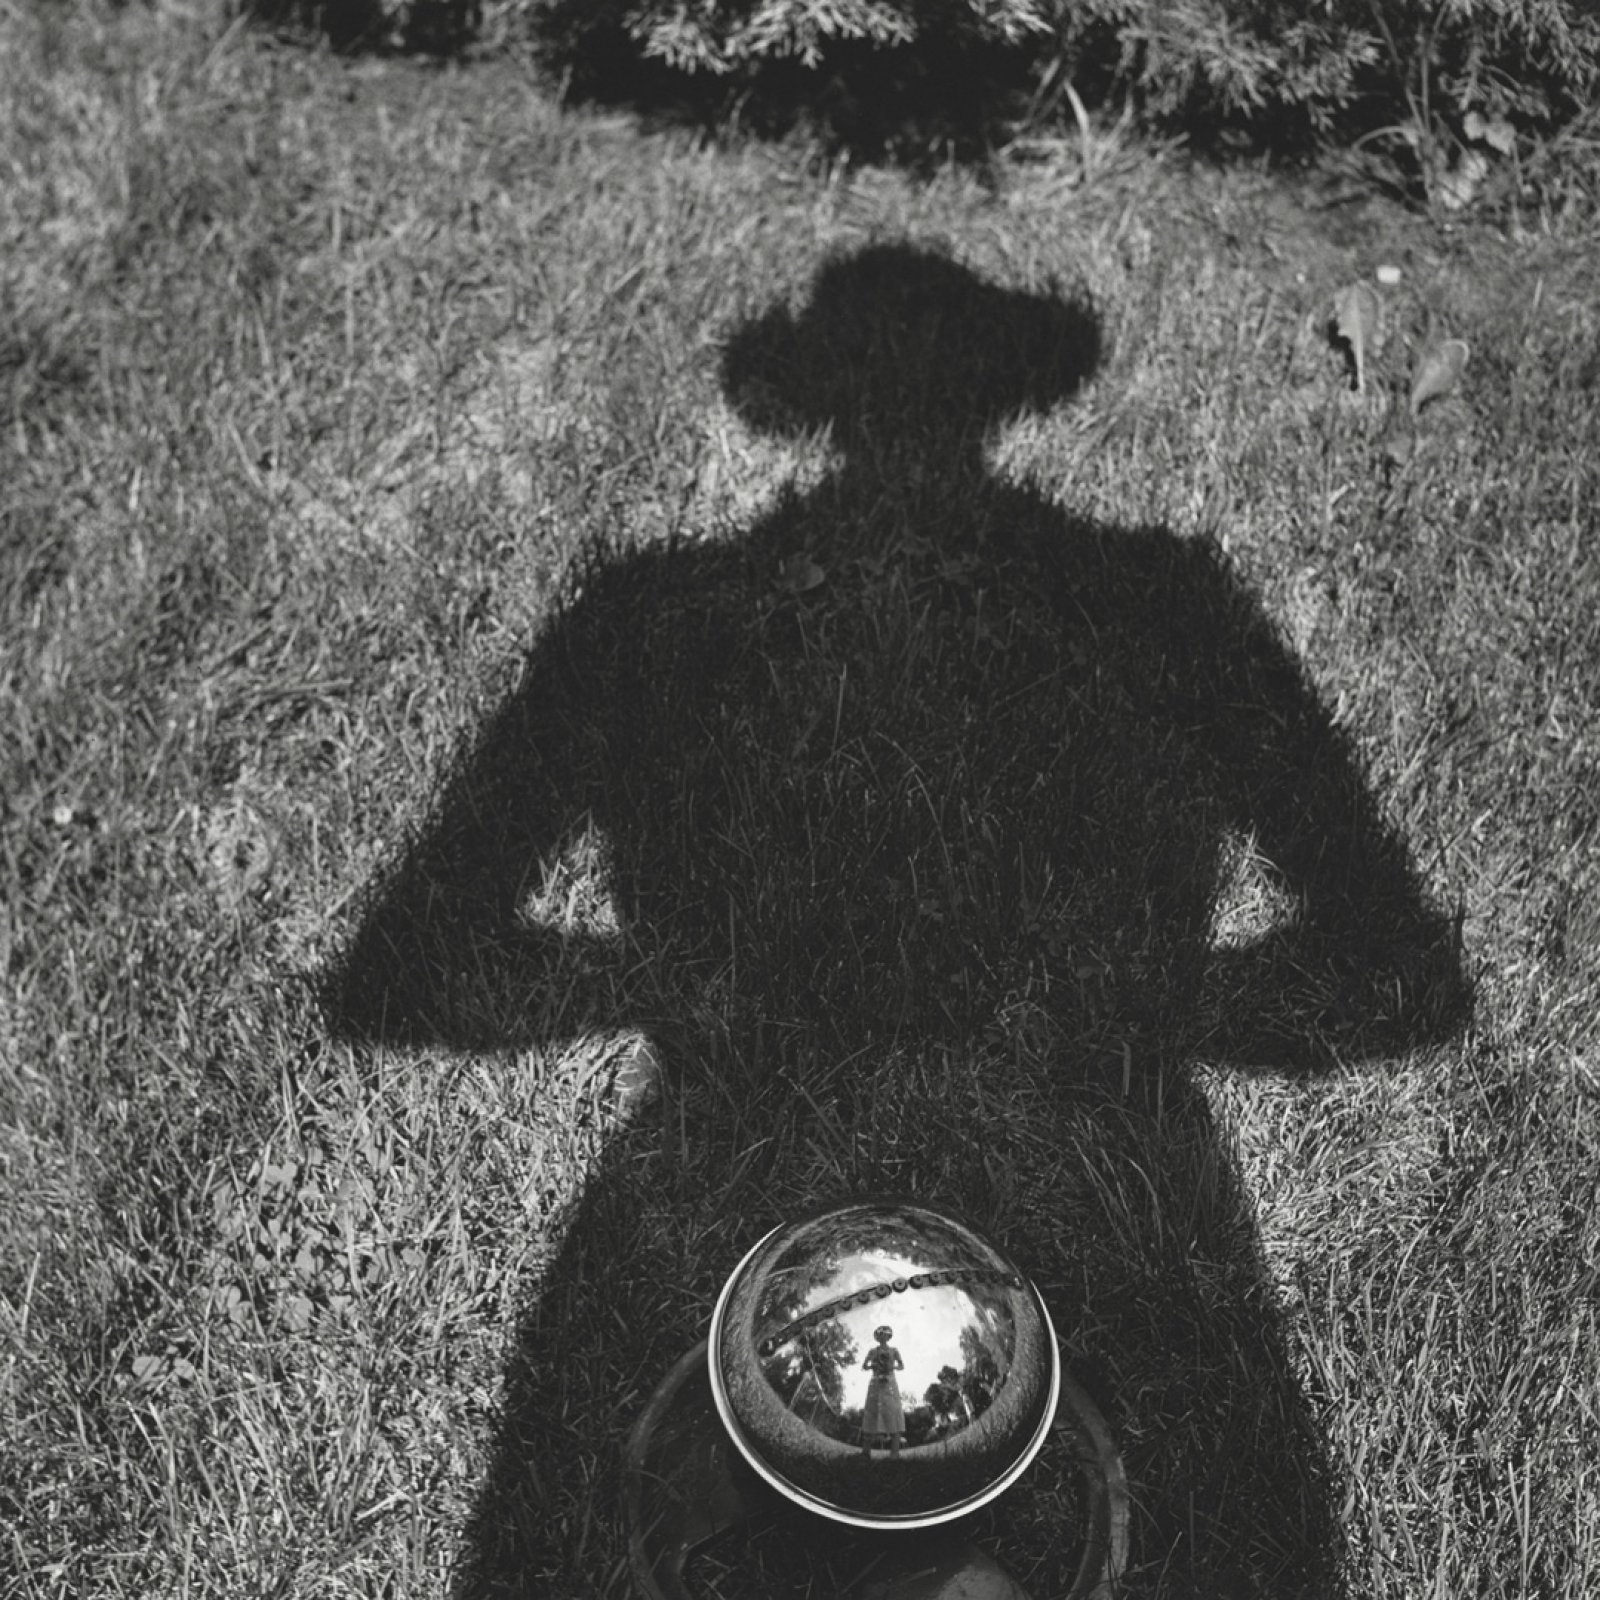 Untitled, Self-portrait, n.d. C © Vivian Maier/Maloof Collection / Courtesy Howard Greenberg Gallery, New York